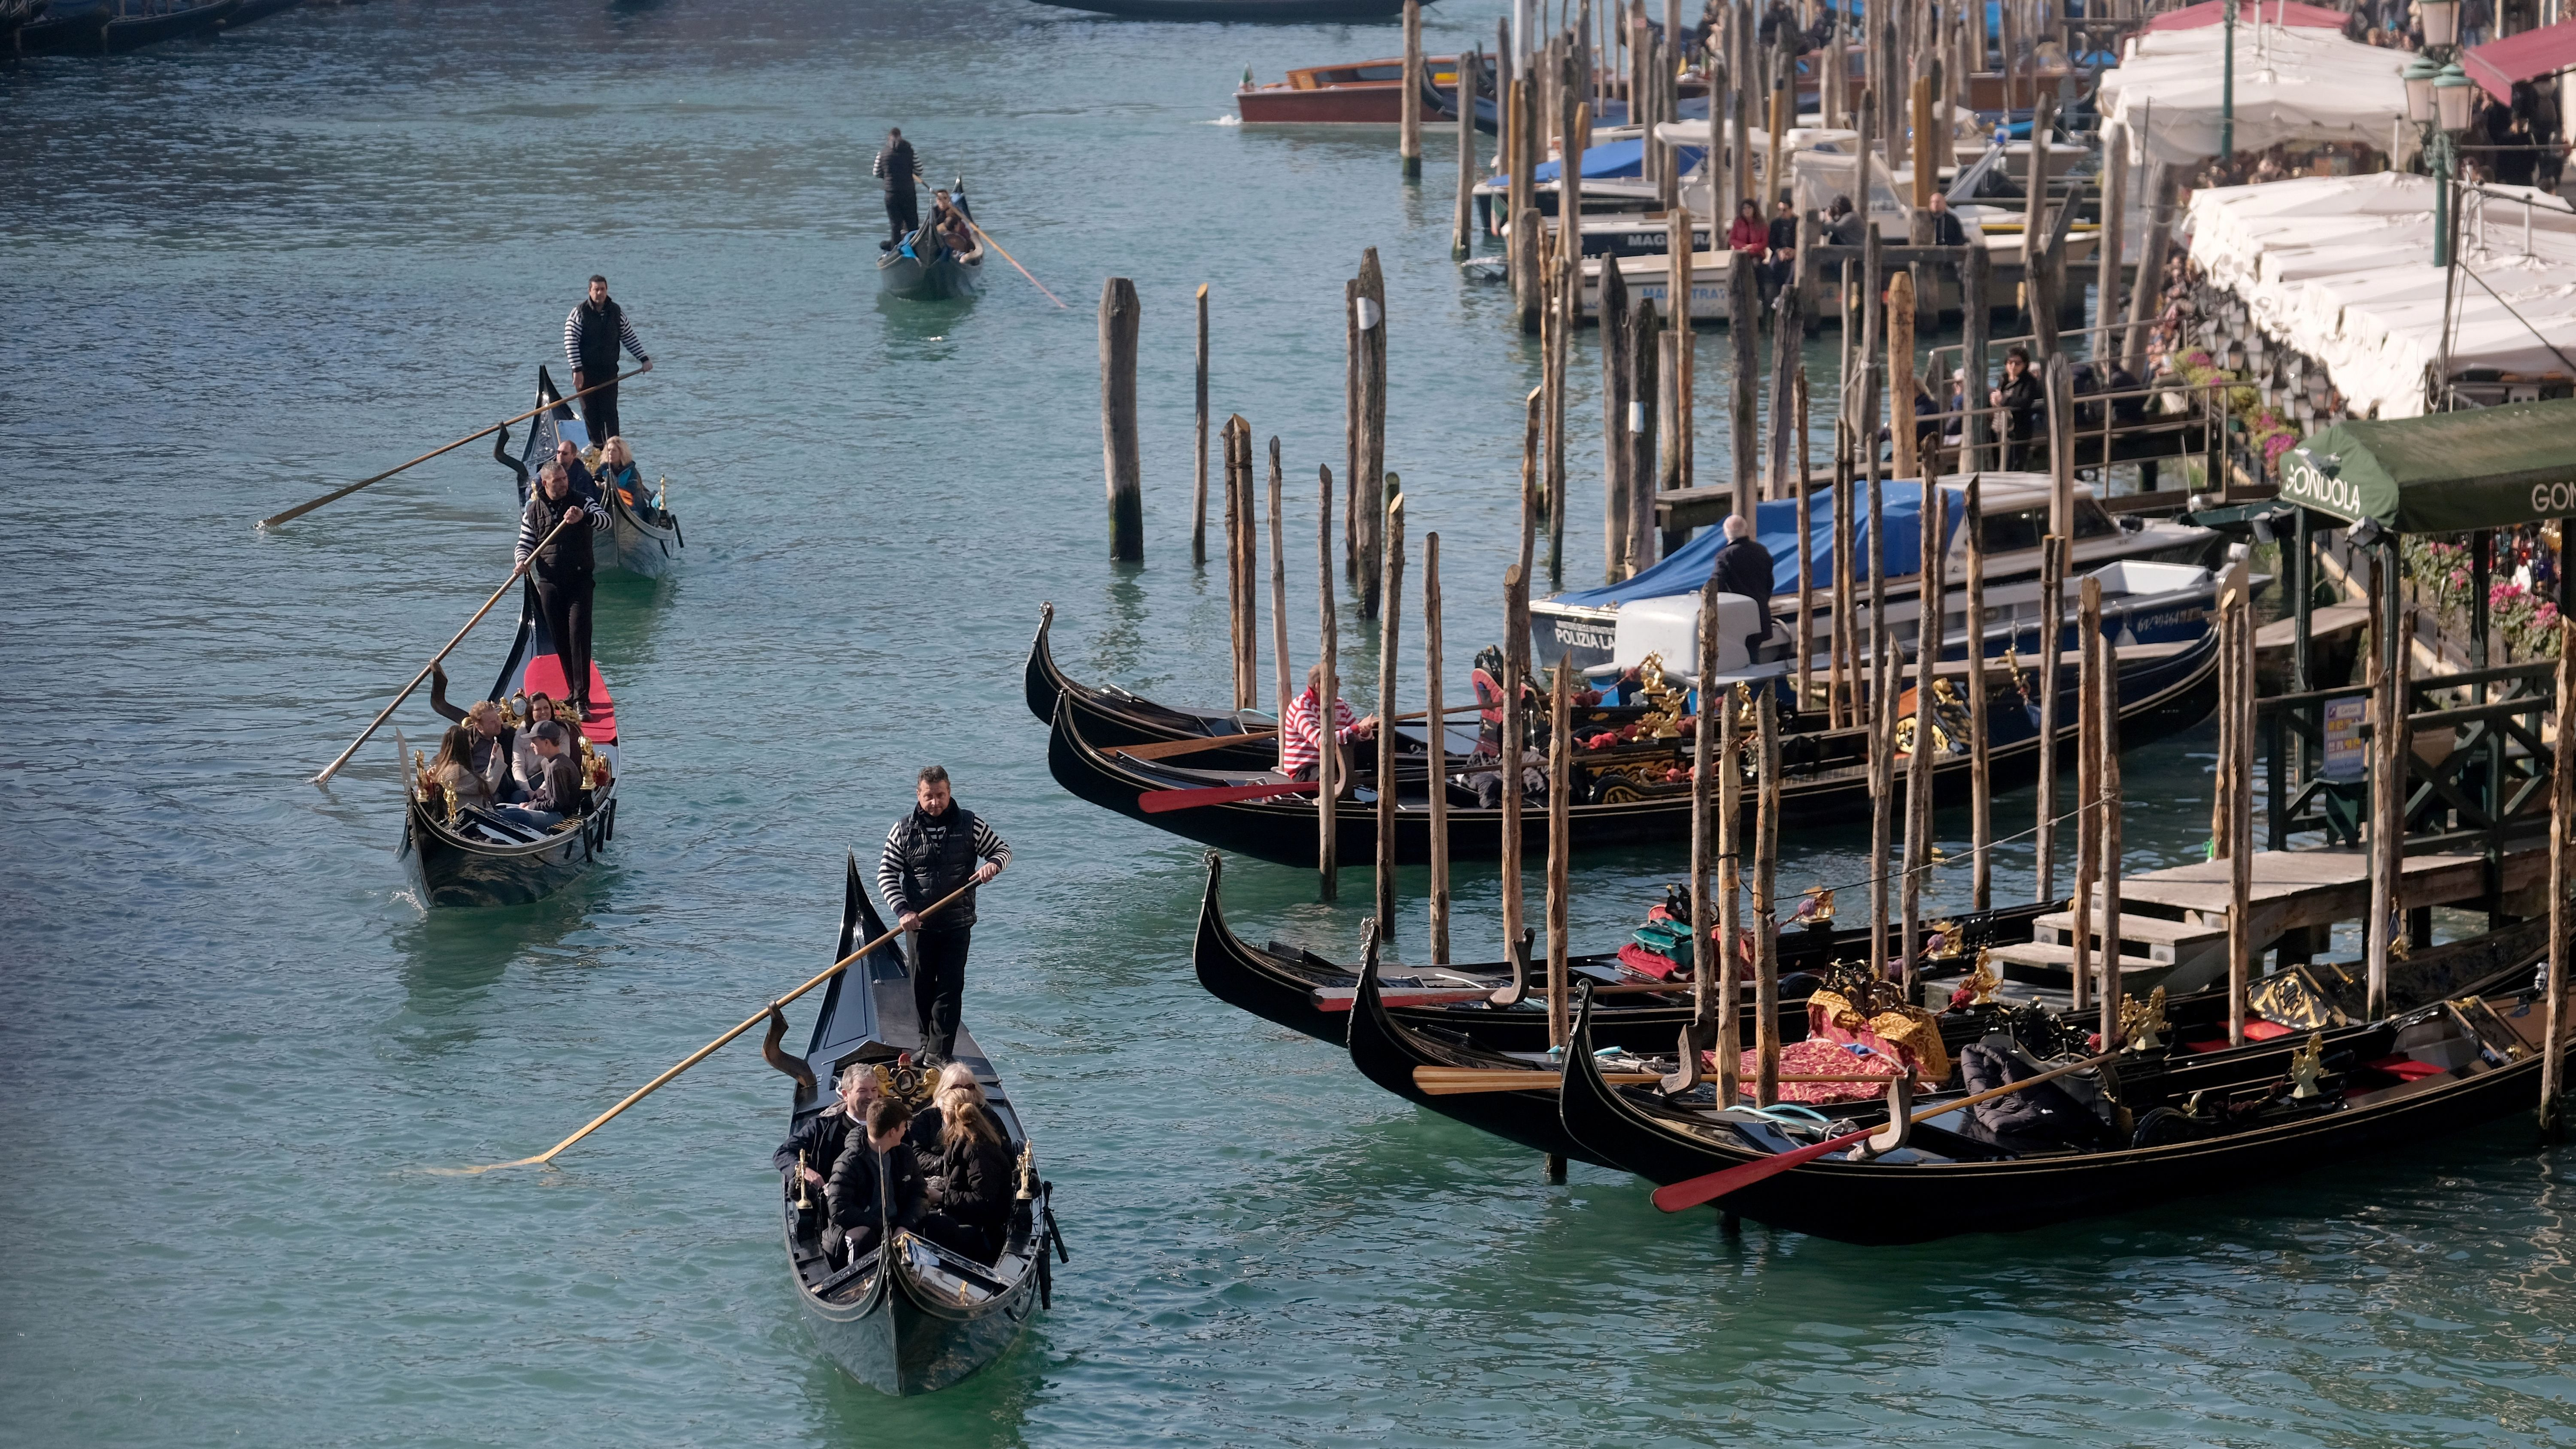 Gondoliers row along the Grand Canal during carnival season in Venice